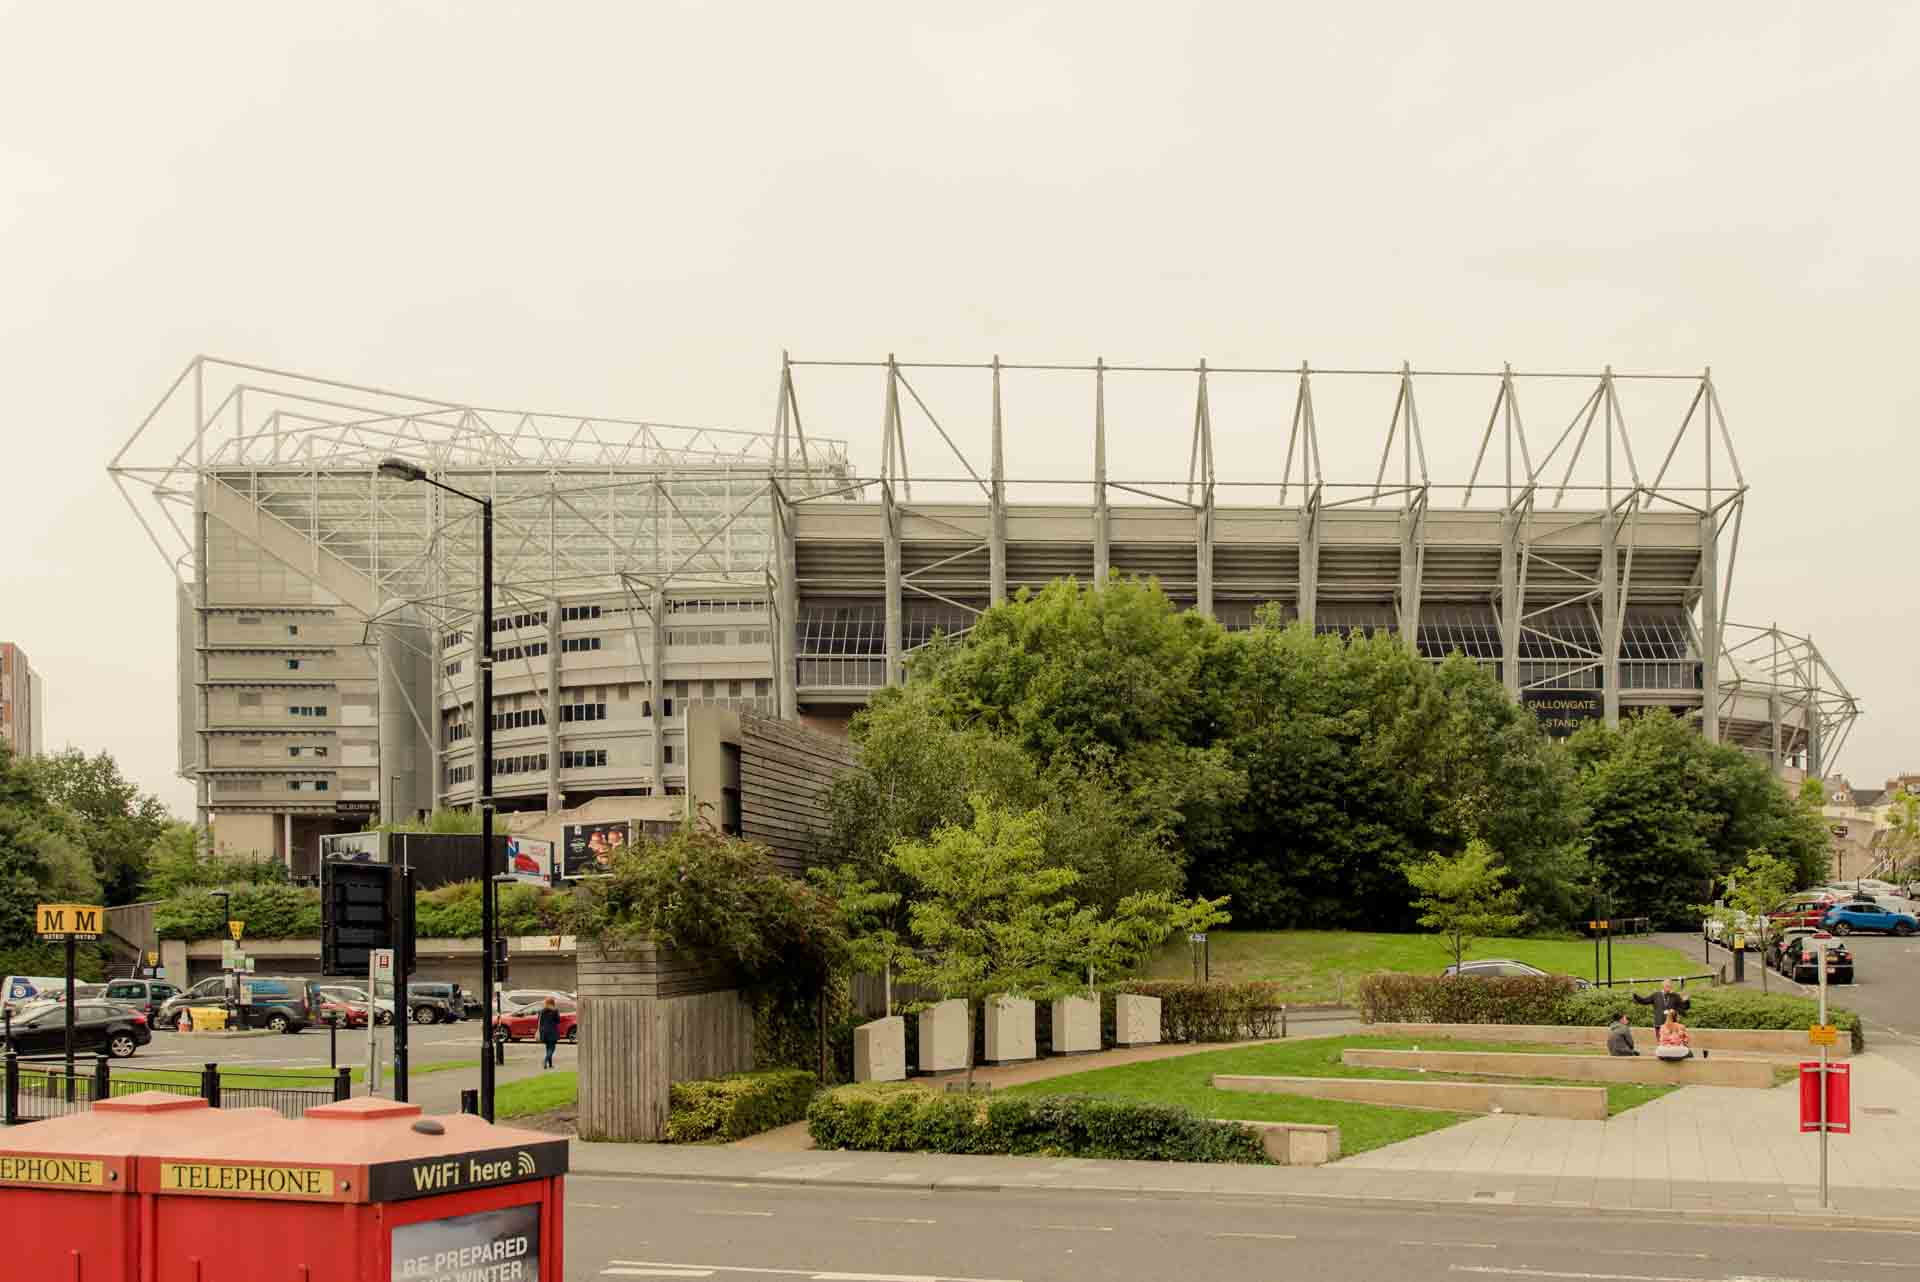 PREMIER SUITES Newcastle is just a short walk from St James' Park